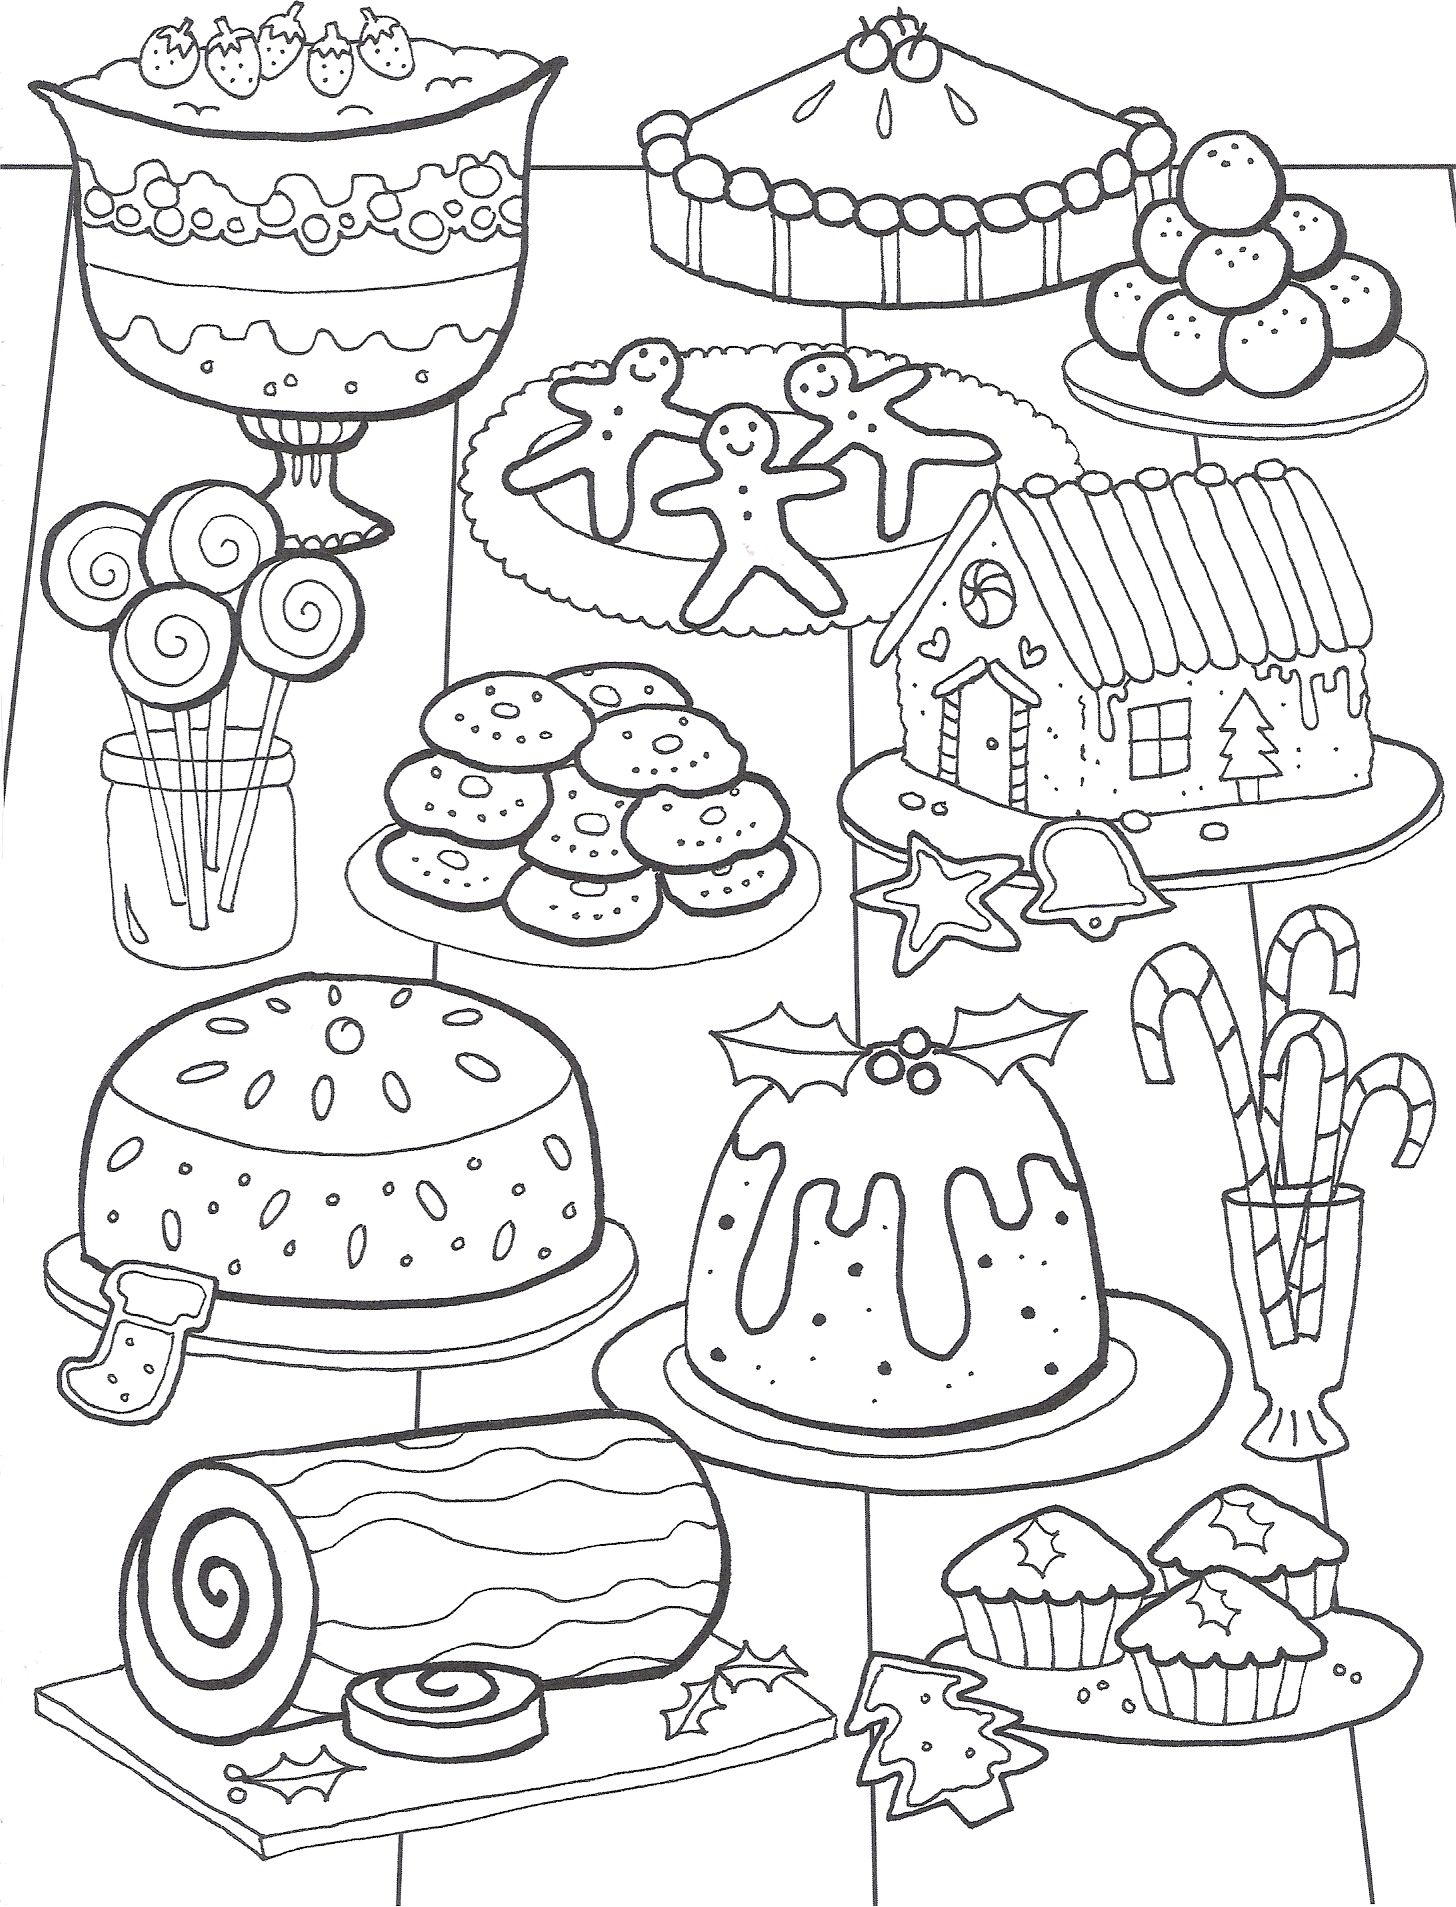 Pin by Deedy Mishler on Drawing Food coloring pages